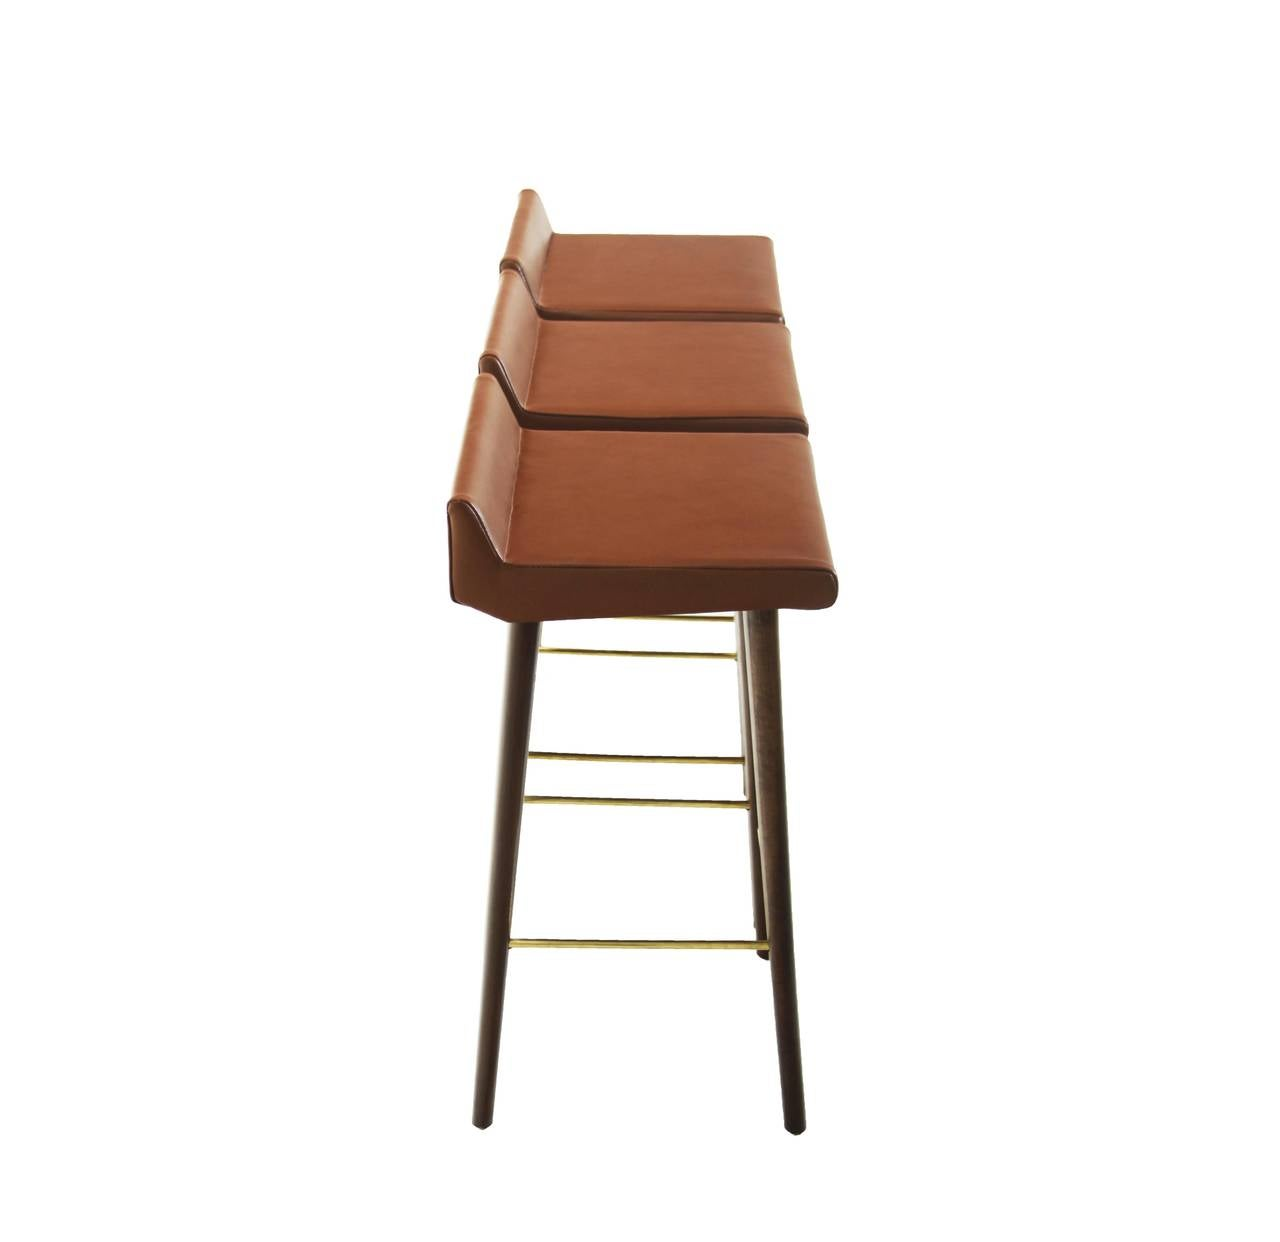 Very Impressive portraiture of Set of Three Wood Leather and Brass Bar Stools by Cimo from Brazil at  with #824A31 color and 1280x1242 pixels